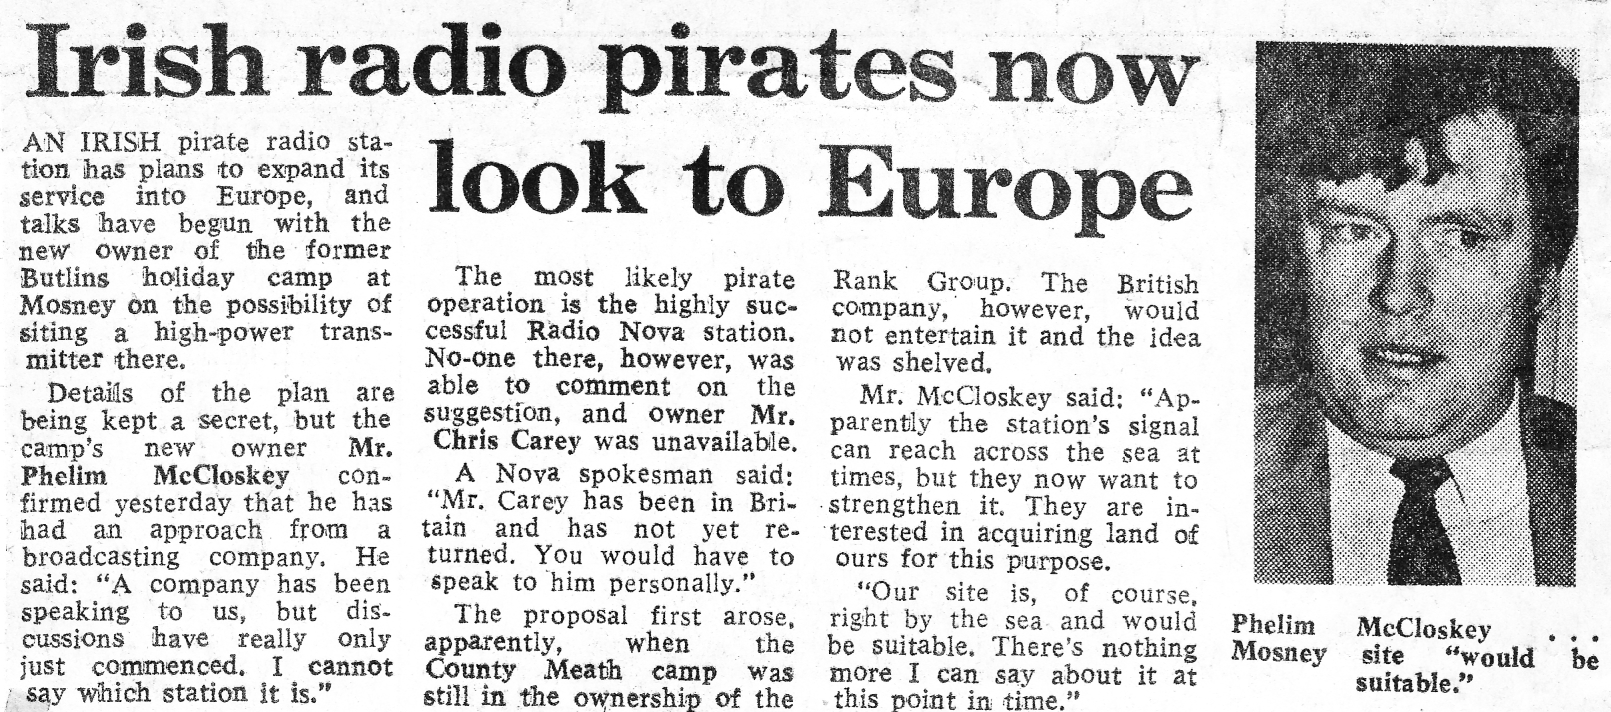 Irish radio pirates now look to Europe was a newspaper headline from the Sunday Independent dated January 30th 1983